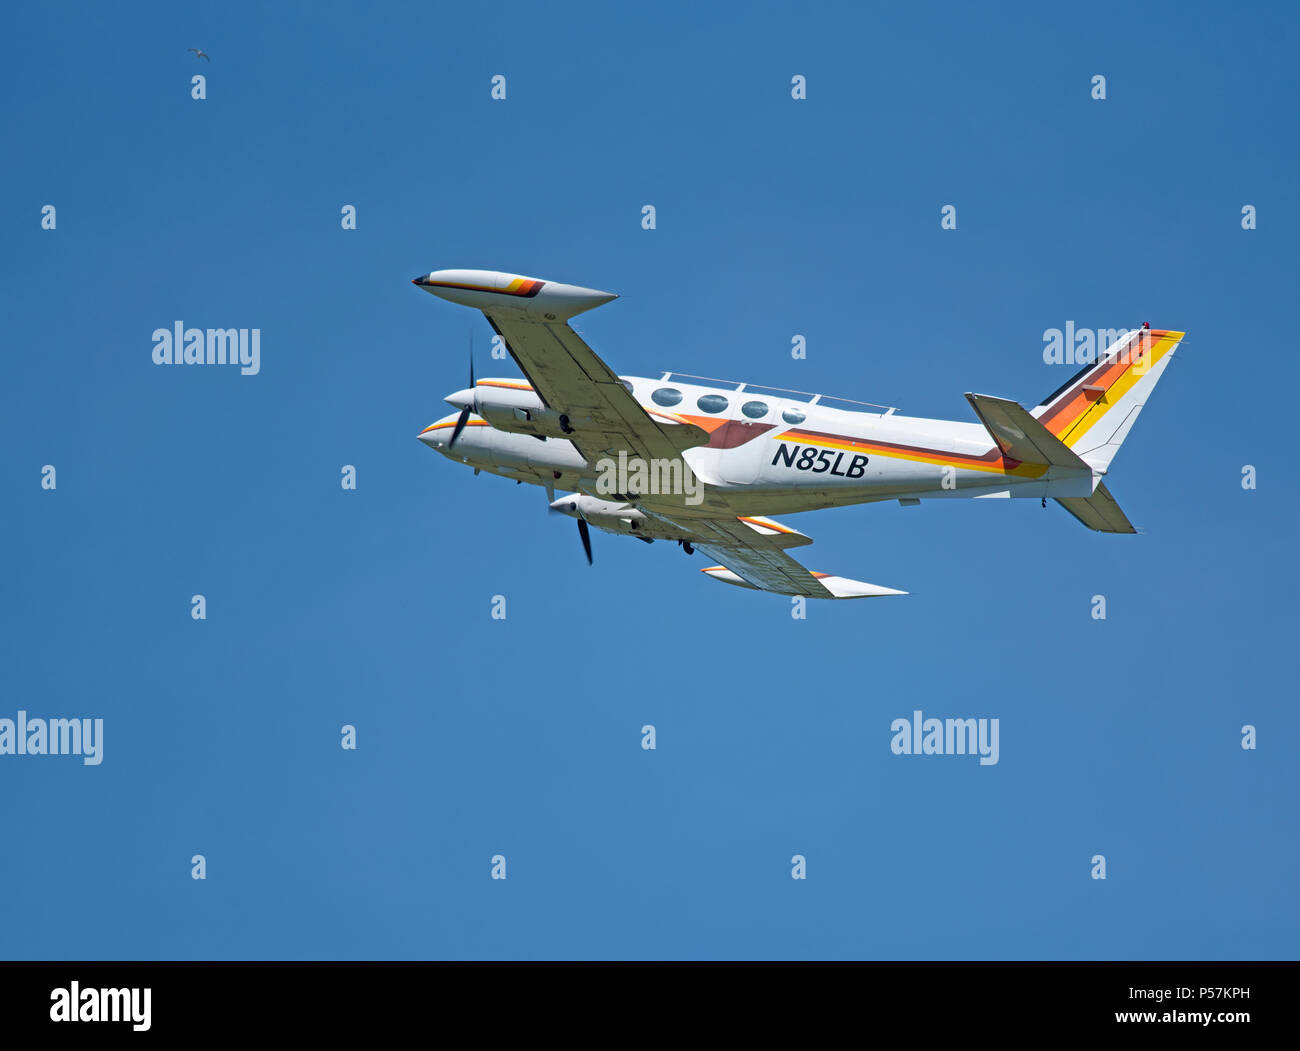 A piston powered propellor driven Cessna 340A Lifts off from Inverness Dalcross Airport in the Scottish Highlands. - Stock Image